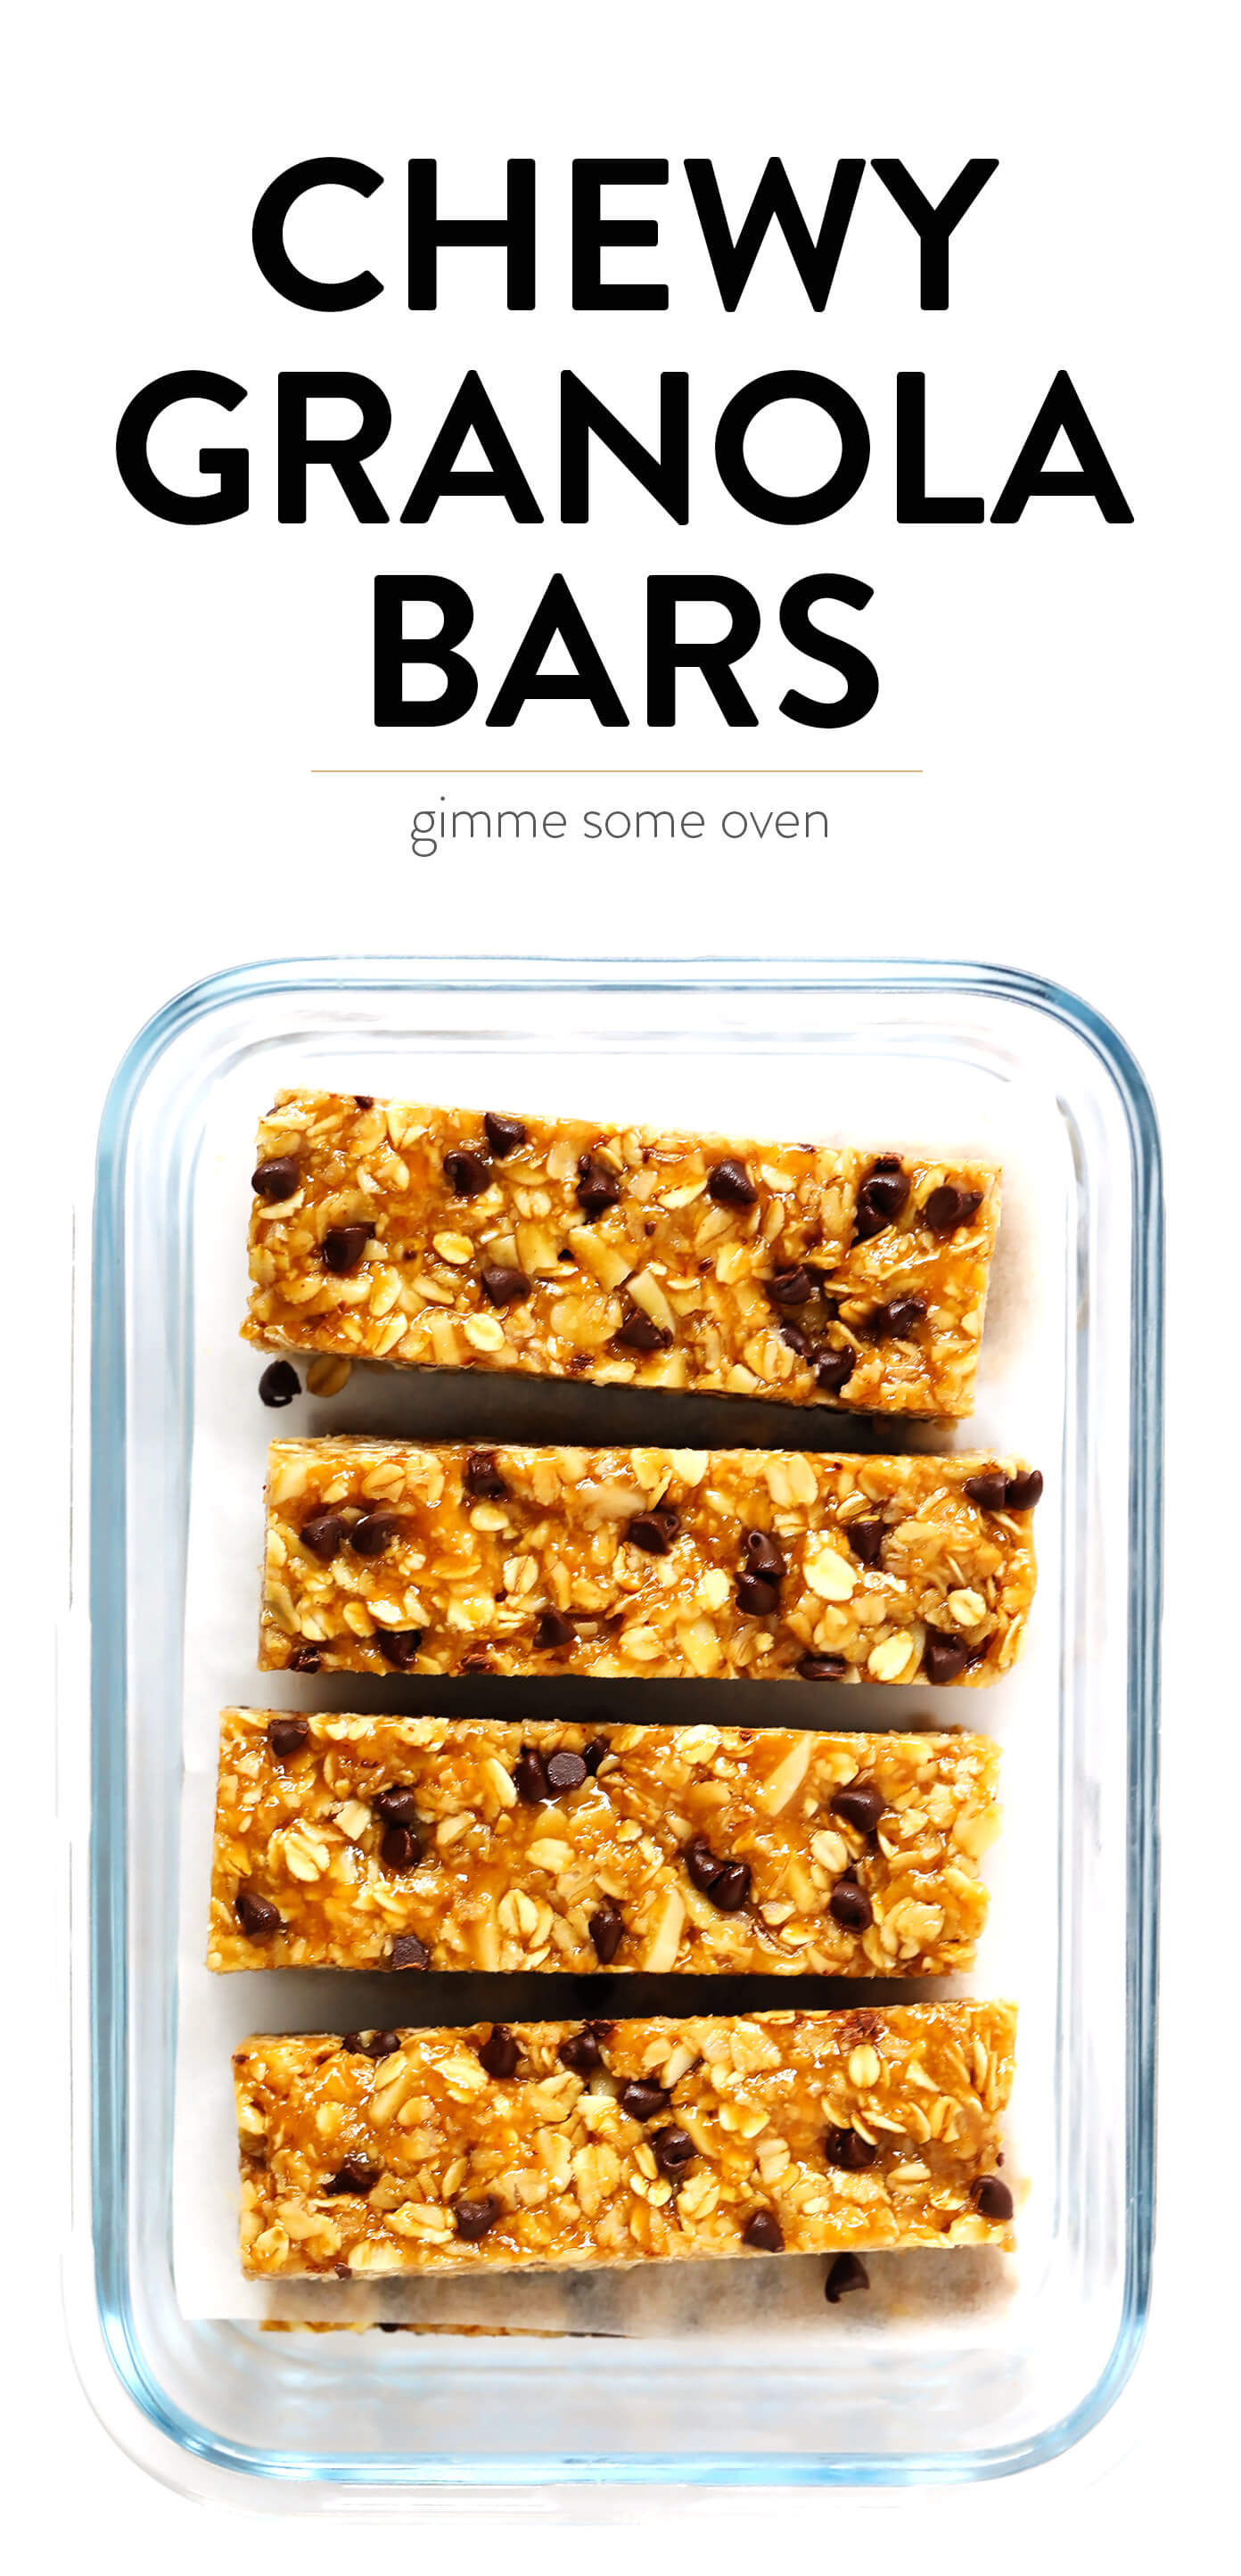 Chewy Granola Bars with Peanut Butter and Chocolate Chips